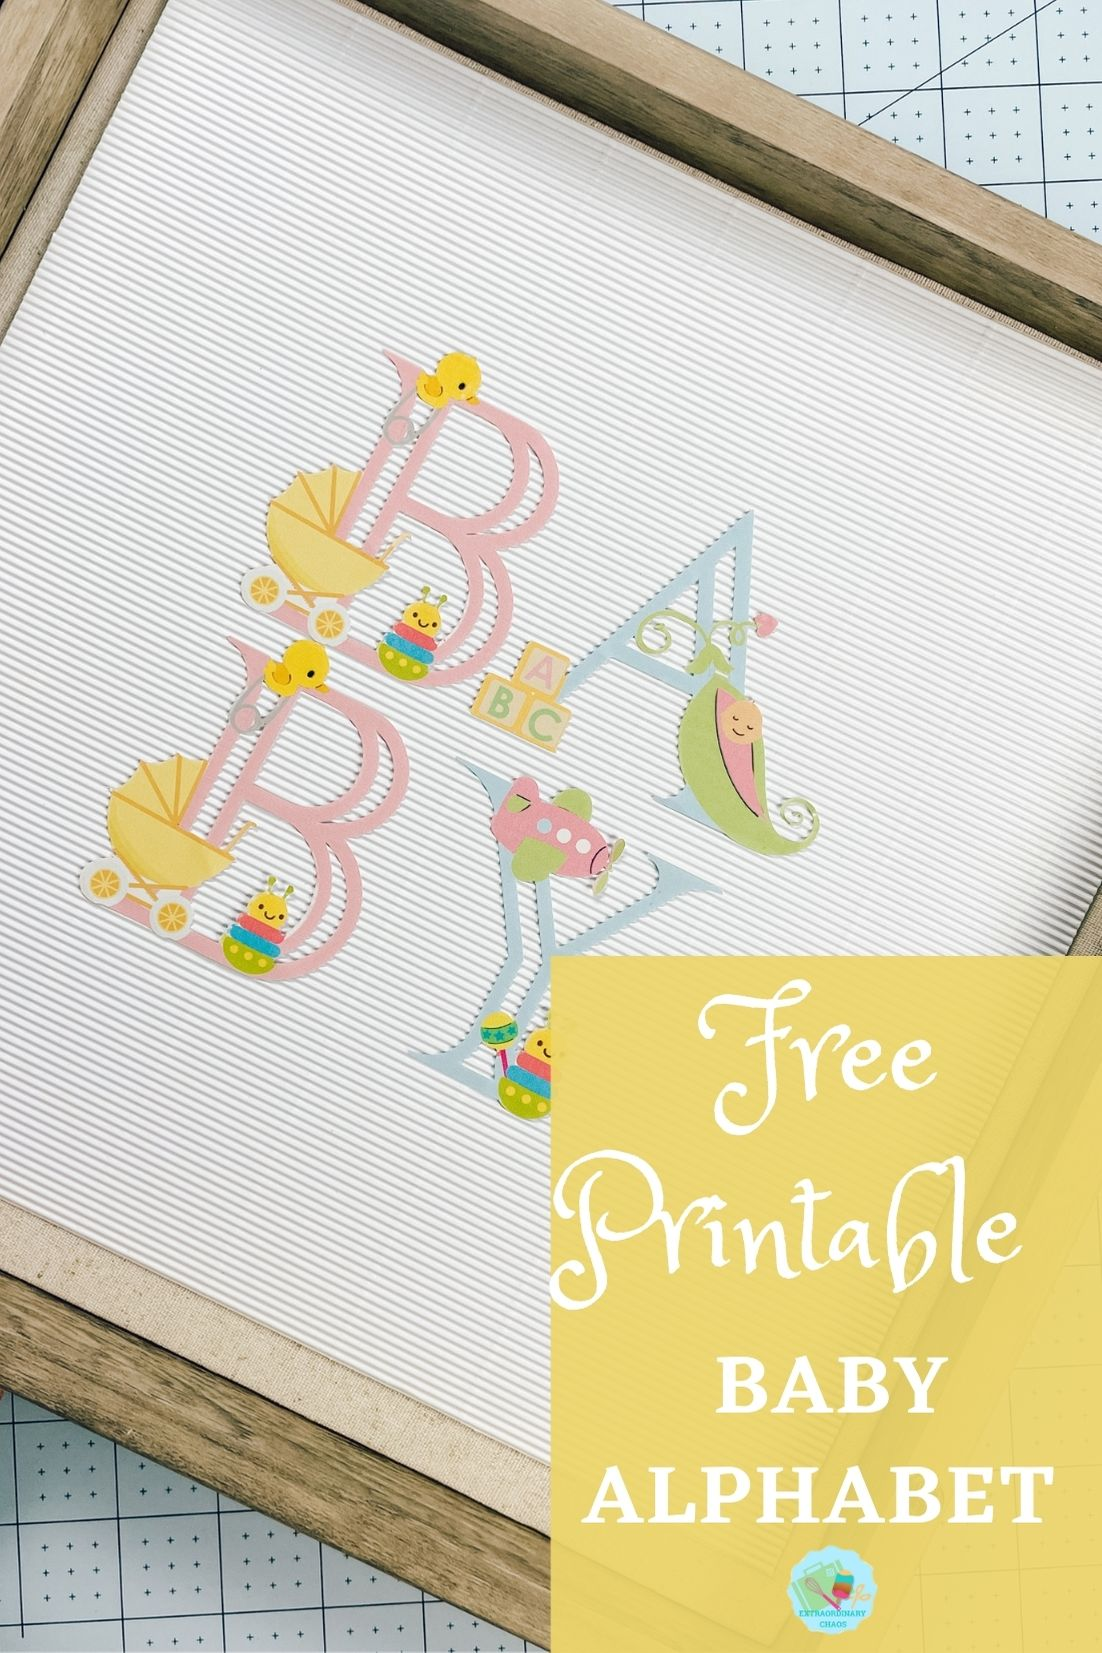 Baby printable alphabet for creating baby shower and baby gifts